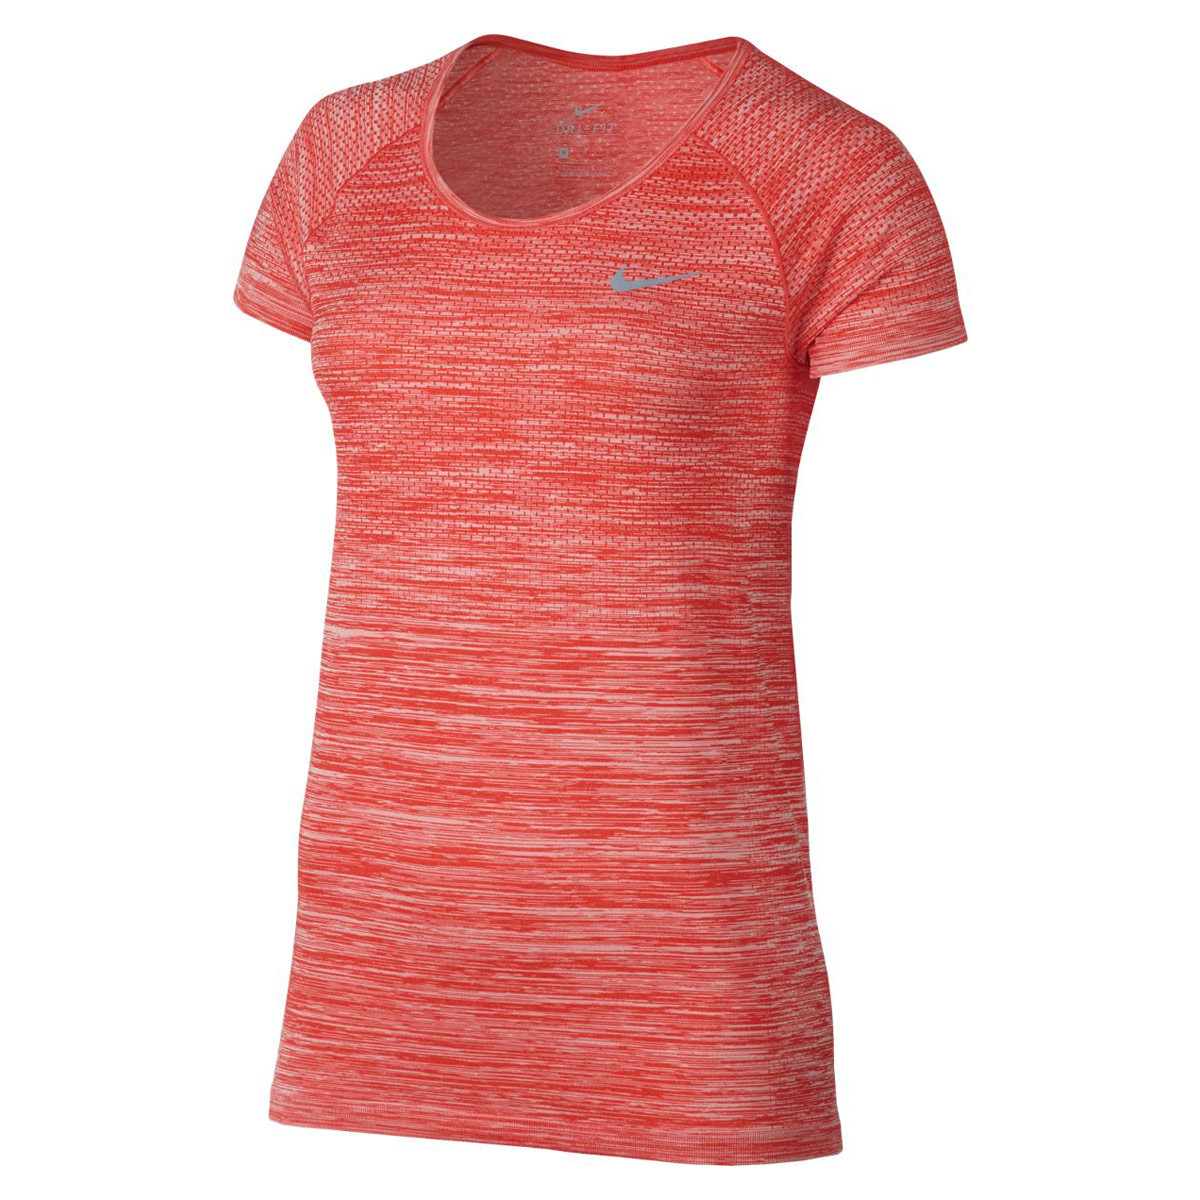 Nike Dri-Fit Knit Tee - Running tops for Women - Red  9f353d0e0